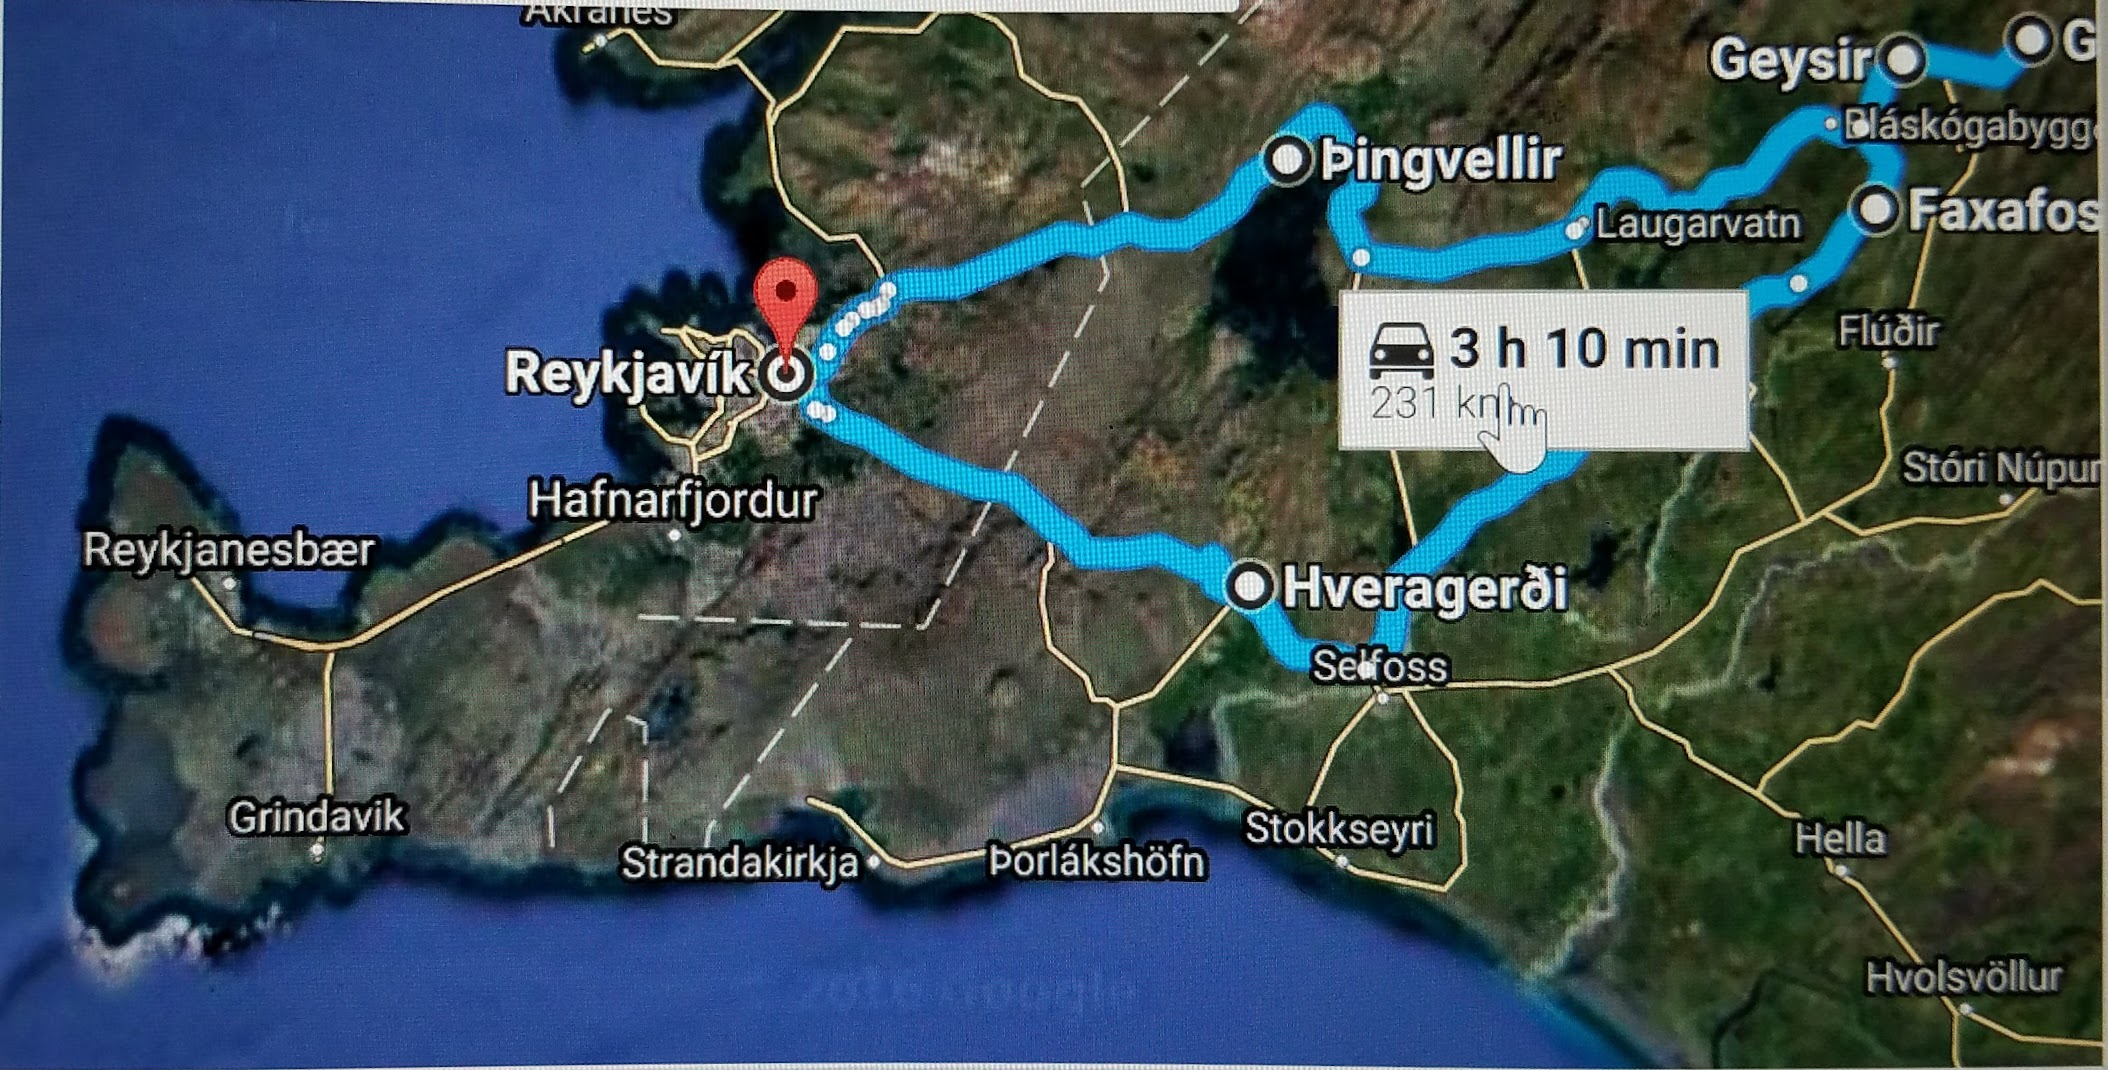 Map of the area covered on the Golden Circle Tour in Iceland. (Credit: Google Maps and GeoIceland.)